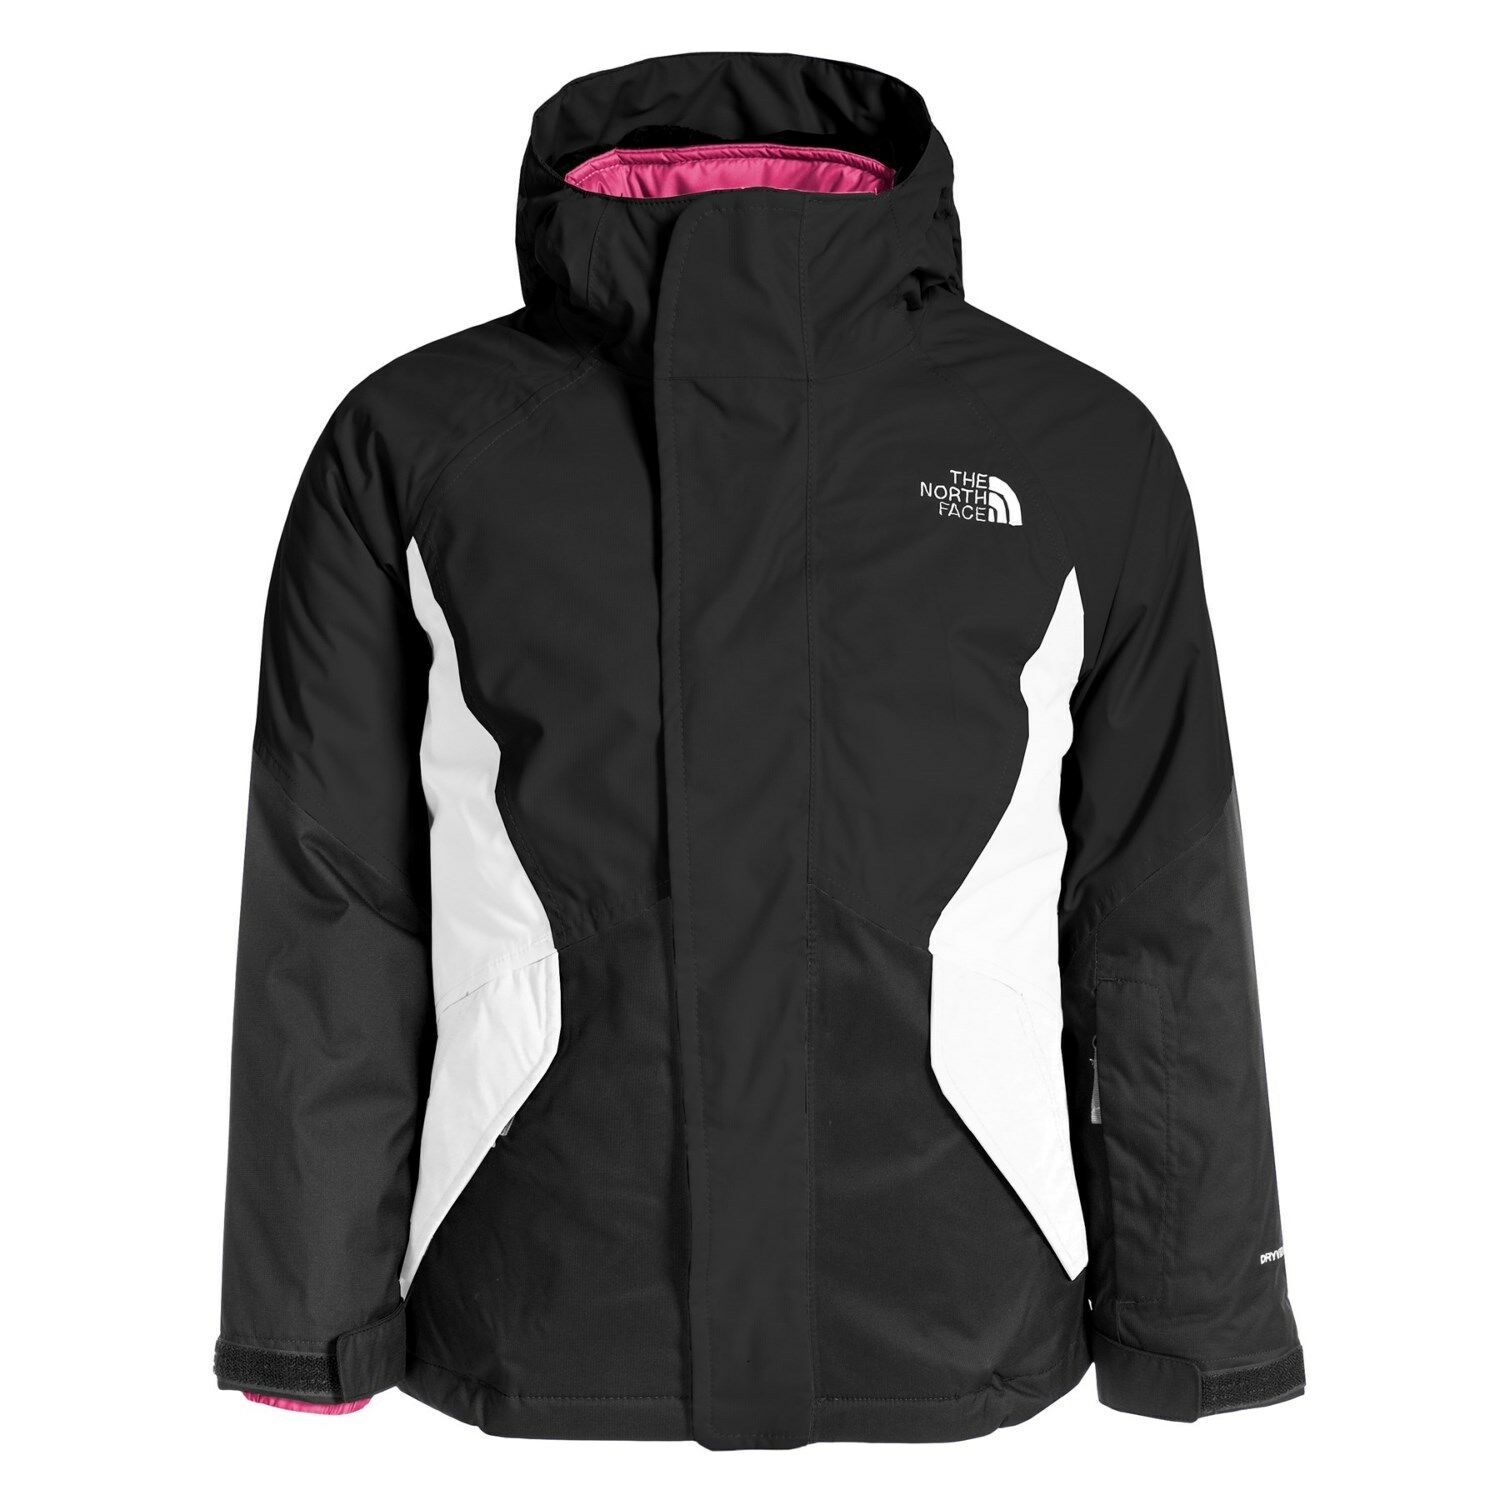 3d78f624d7fc The North Face Girls Kira Triclimate Jacket Nf0a2tmajk3 S - TNF ...